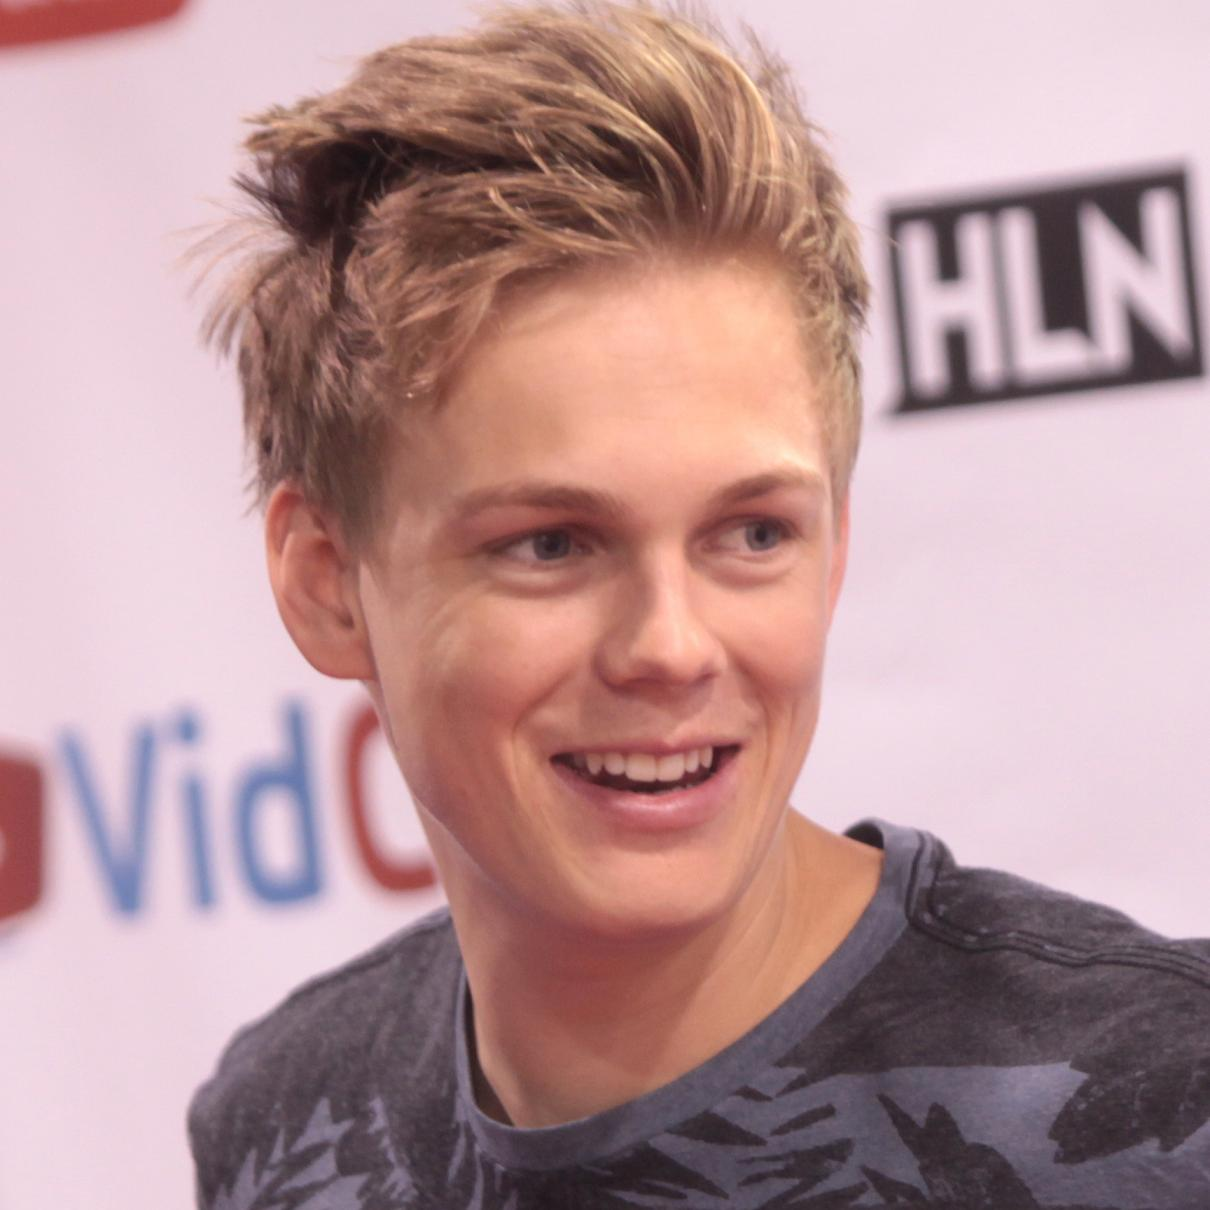 Caspar Lee Net Worth (2019), Height, Age, Bio and Facts